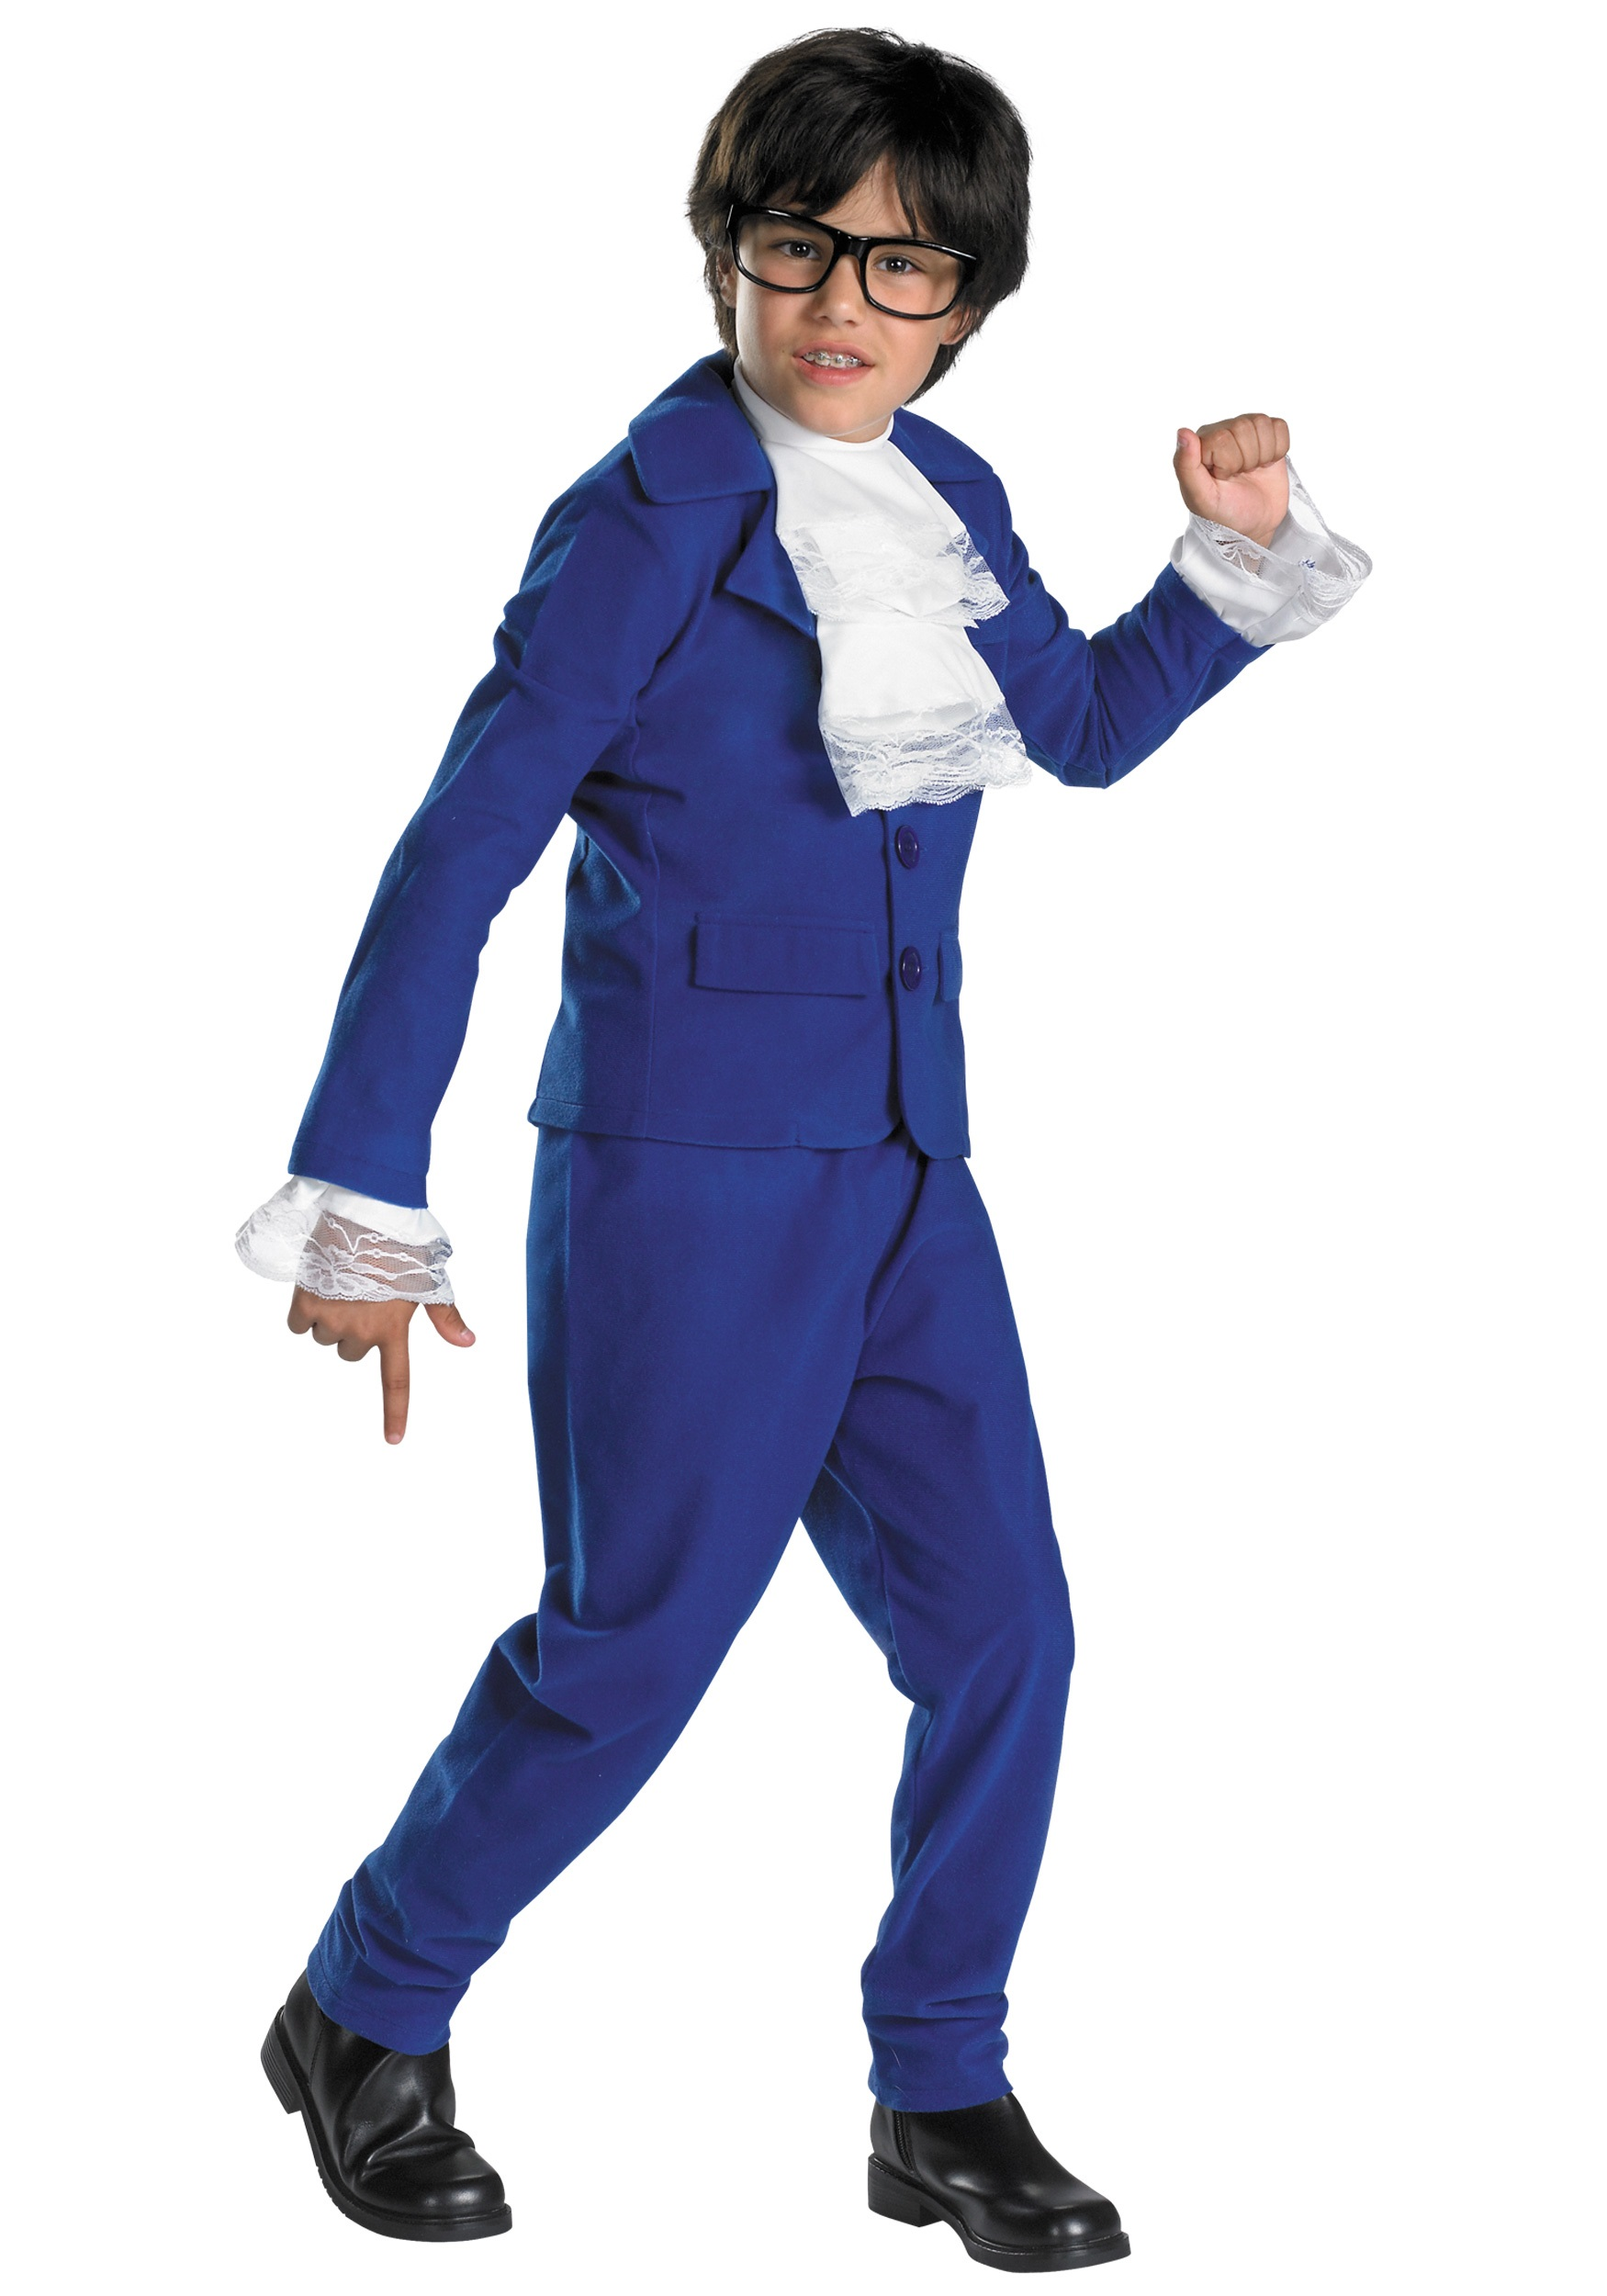 boy halloween costume ideas on Home Halloween Costume Ideas Austin Powers Costumes Child Austin  sc 1 th 268 : international costume ideas for kids  - Germanpascual.Com